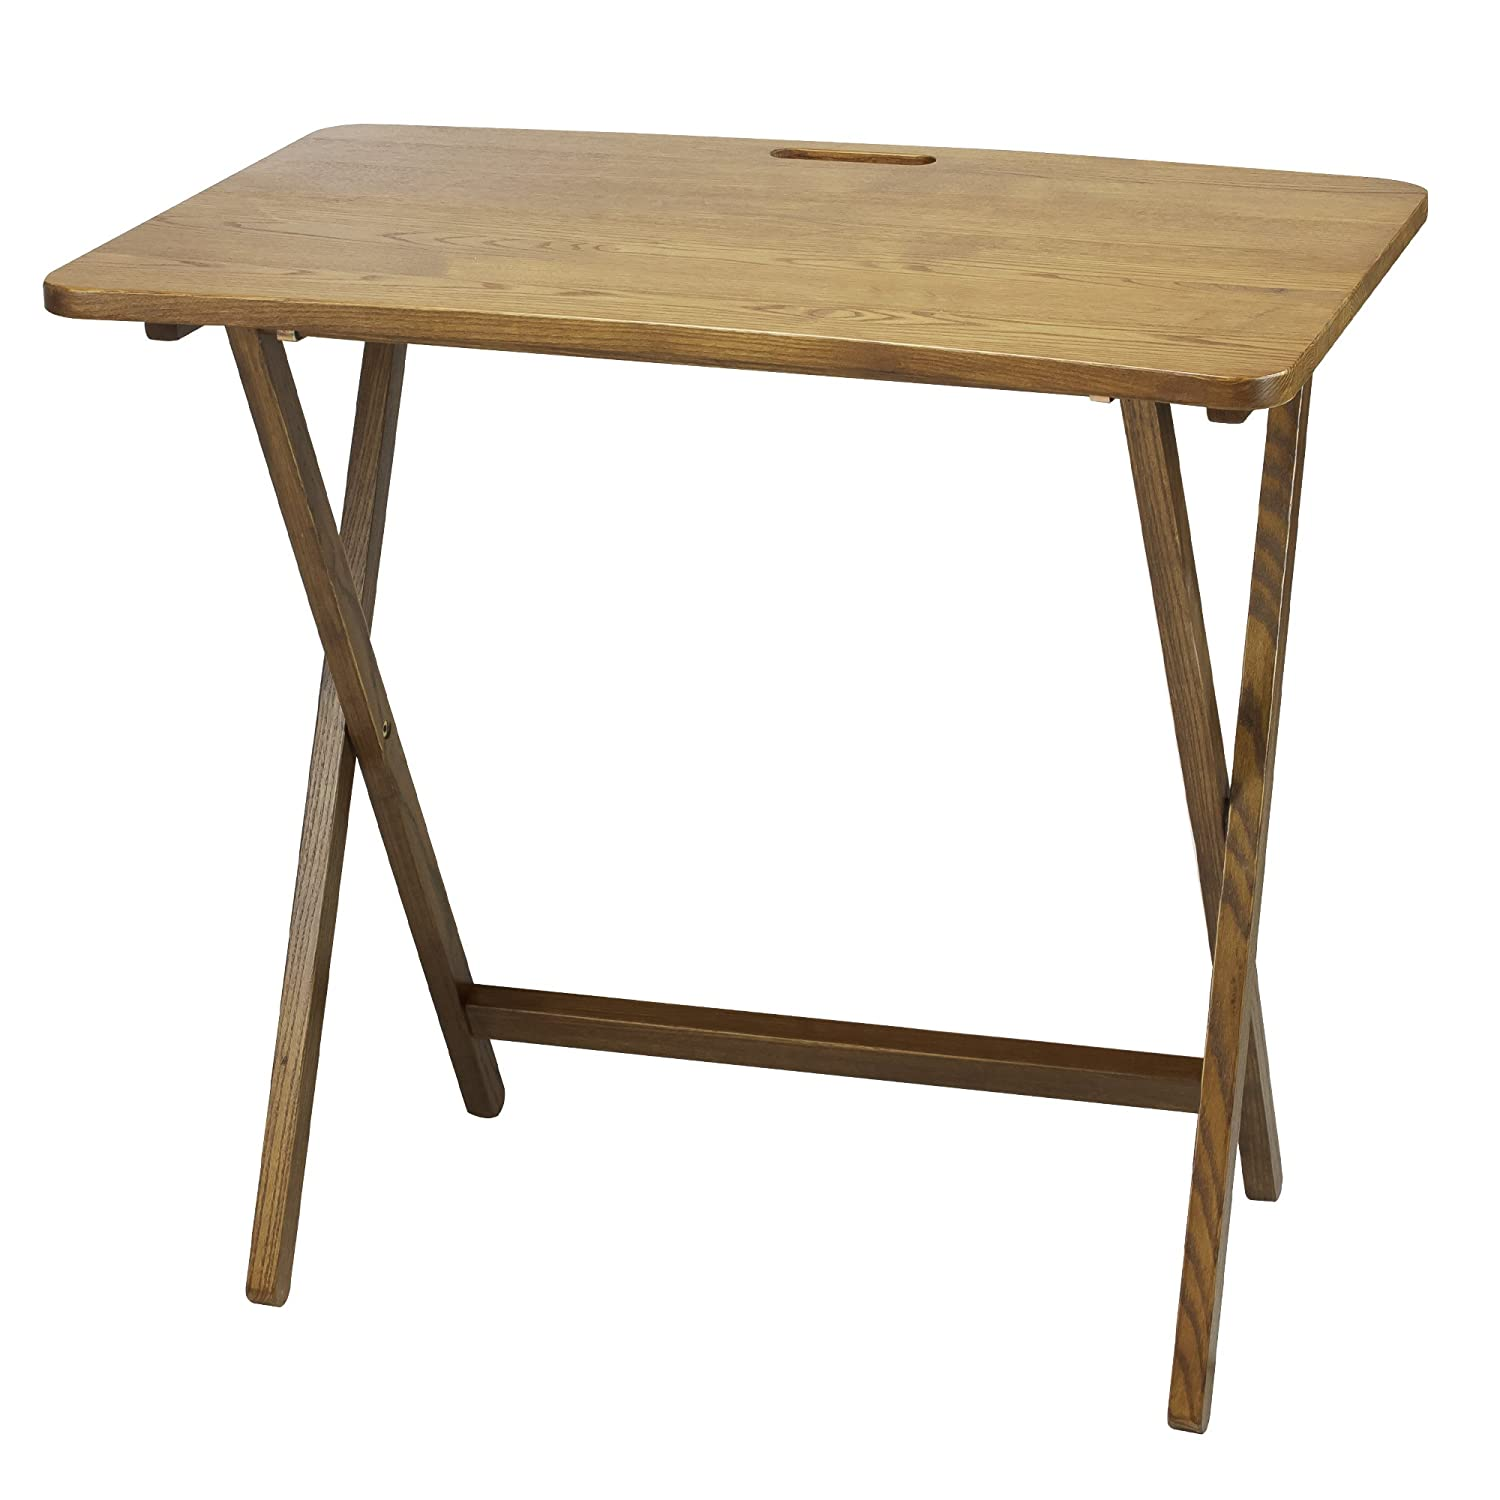 PRESTO PRODUCTS COMPANY American Trails Arizona Folding Table with Solid Red Oak